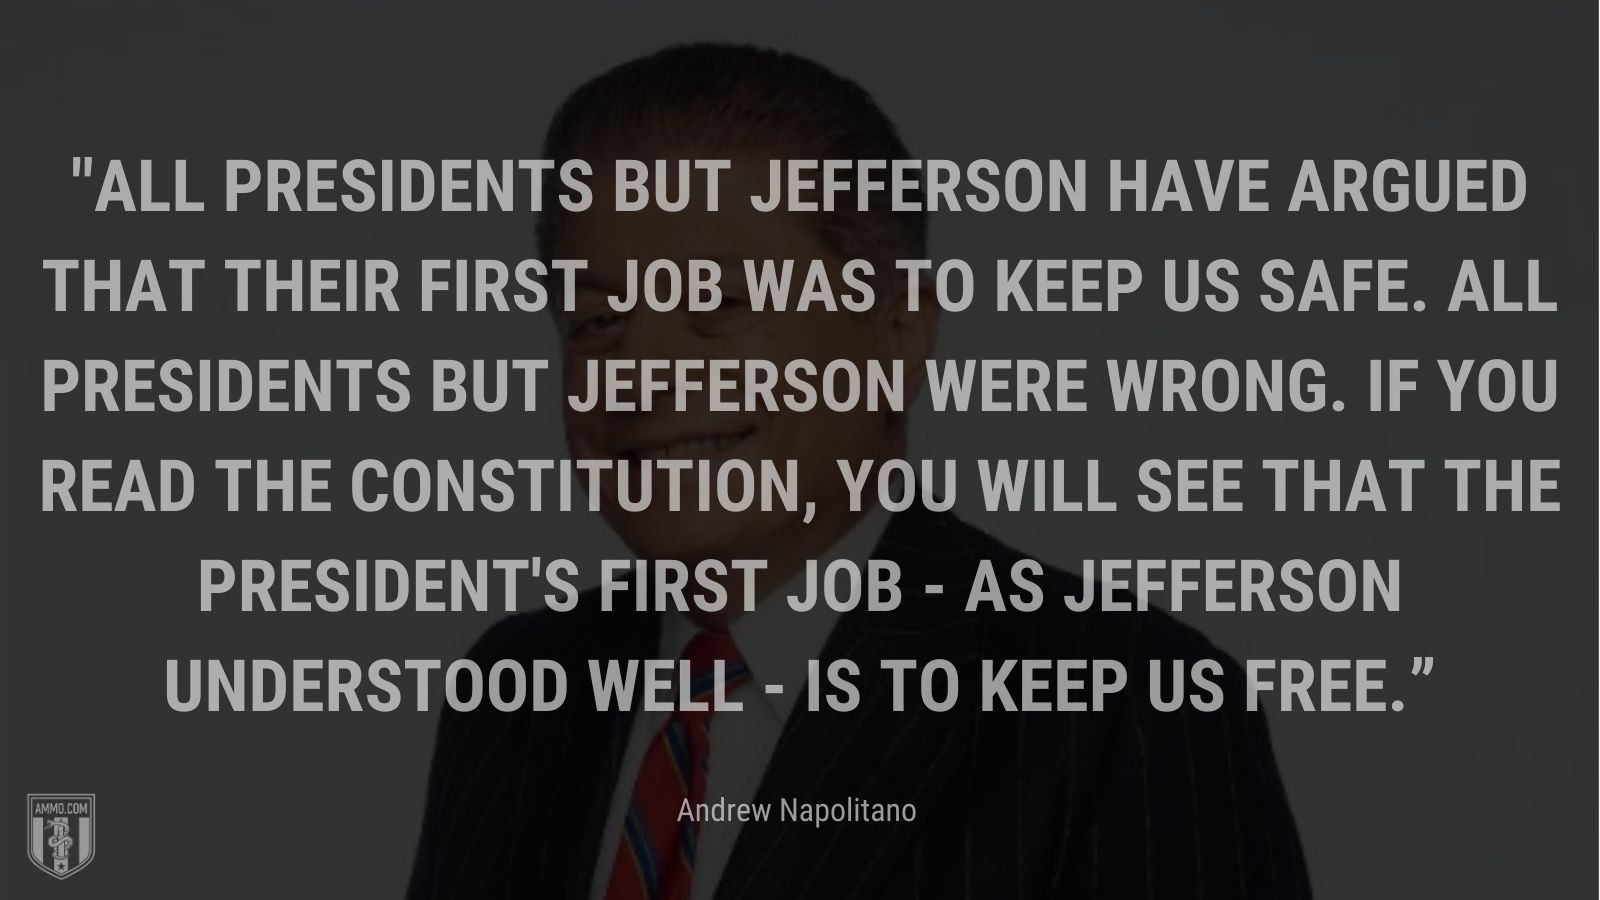 """""""All presidents but Jefferson have argued that their first job was to keep us safe. All presidents but Jefferson were wrong. If you read the Constitution, you will see that the President's first job - as Jefferson understood well - is to keep us free."""" - Andrew Napolitano"""